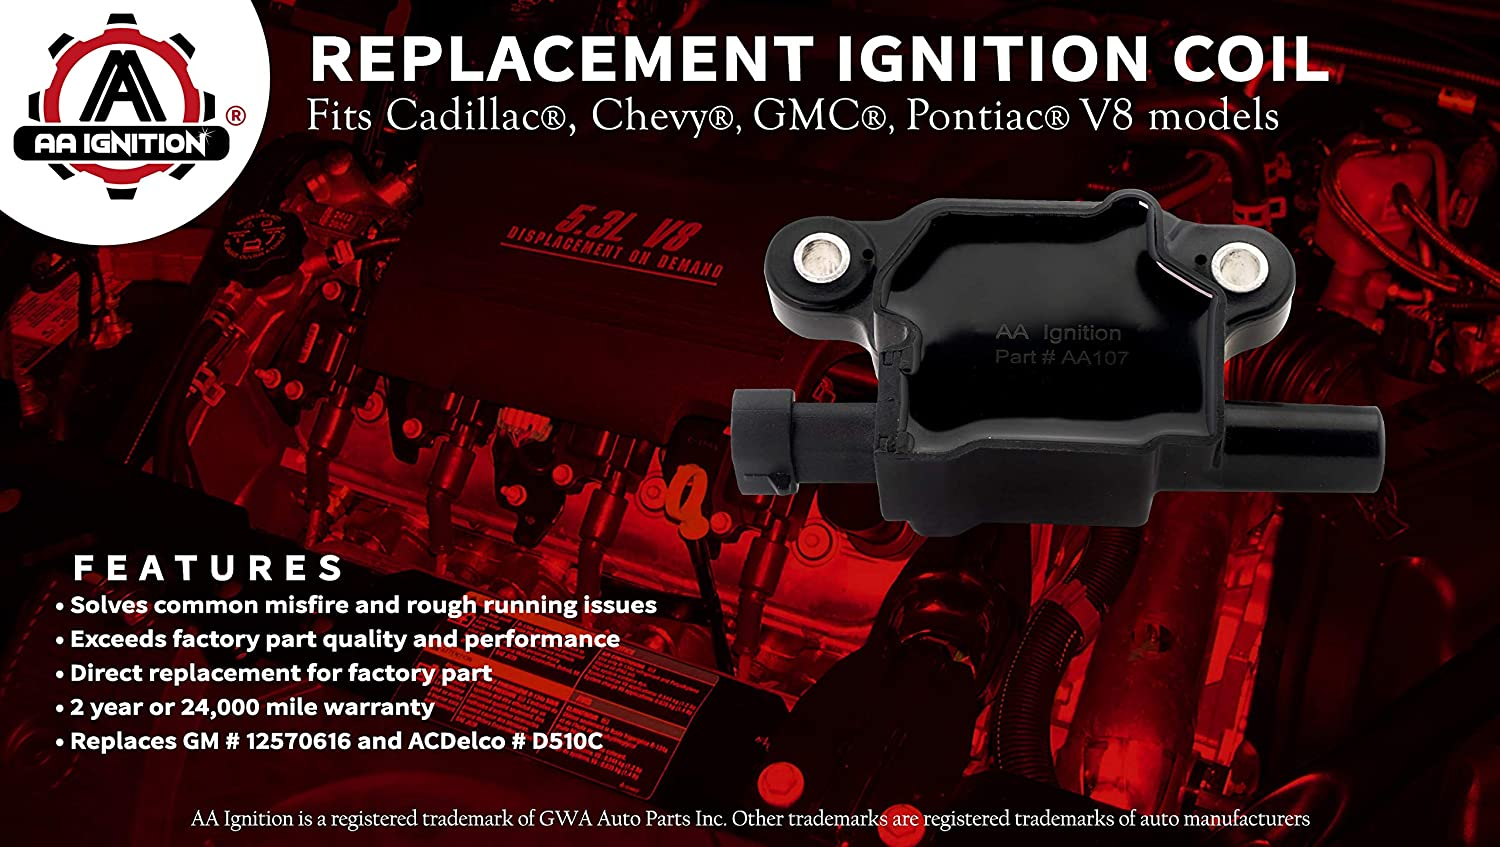 Ignition Coil Pack Replaces Gm 12570616 Acdelco D510c Buzz Box Fits Cadillac Chevrolet Gmc Pontiac 53l 60l V8 G8 Grand Prix H3 Tahoe